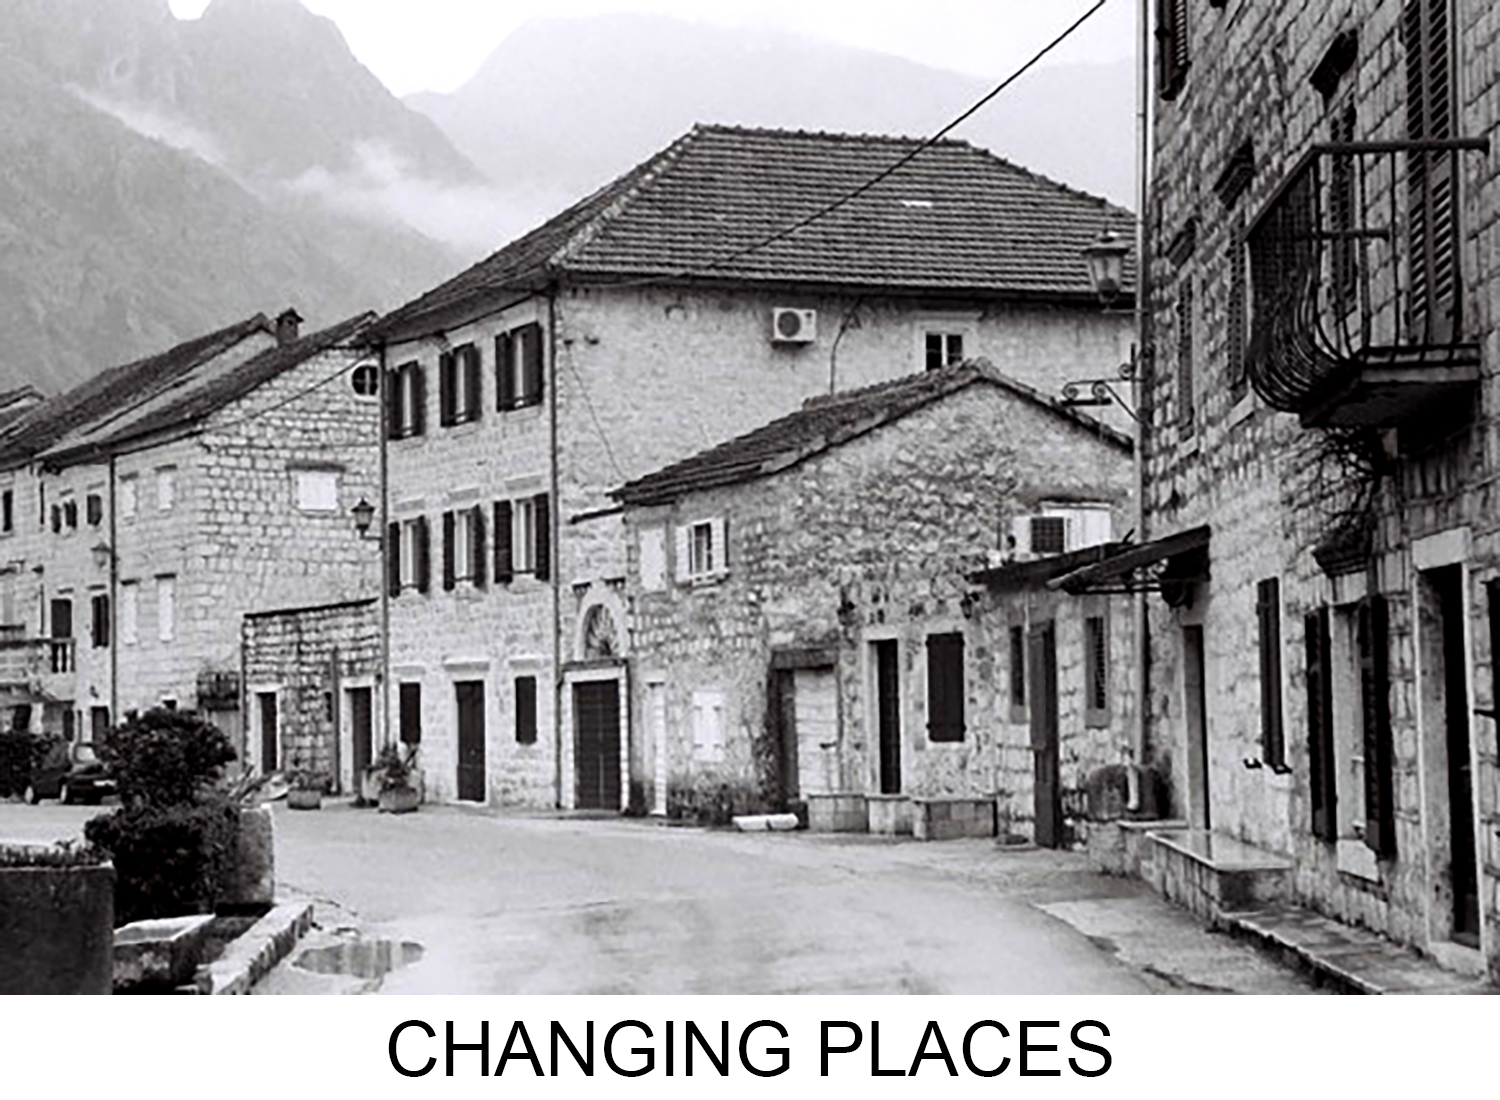 Changing Places (Montenegro)